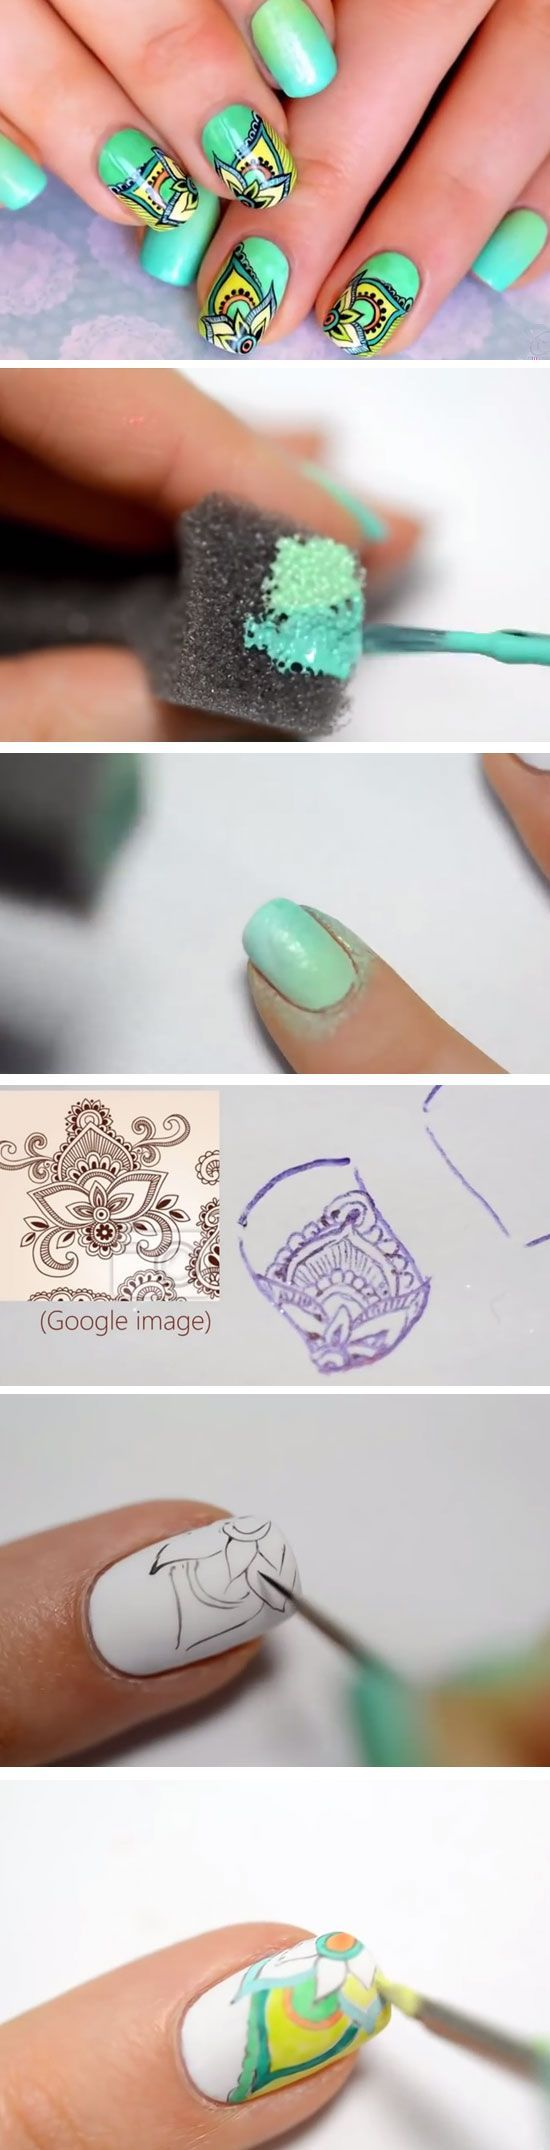 Nail art done at homeartnailsart summer glimpse beautiful summer best images about flowers nail art designs on pinterest nail lfc nail art prinsesfo Image collections